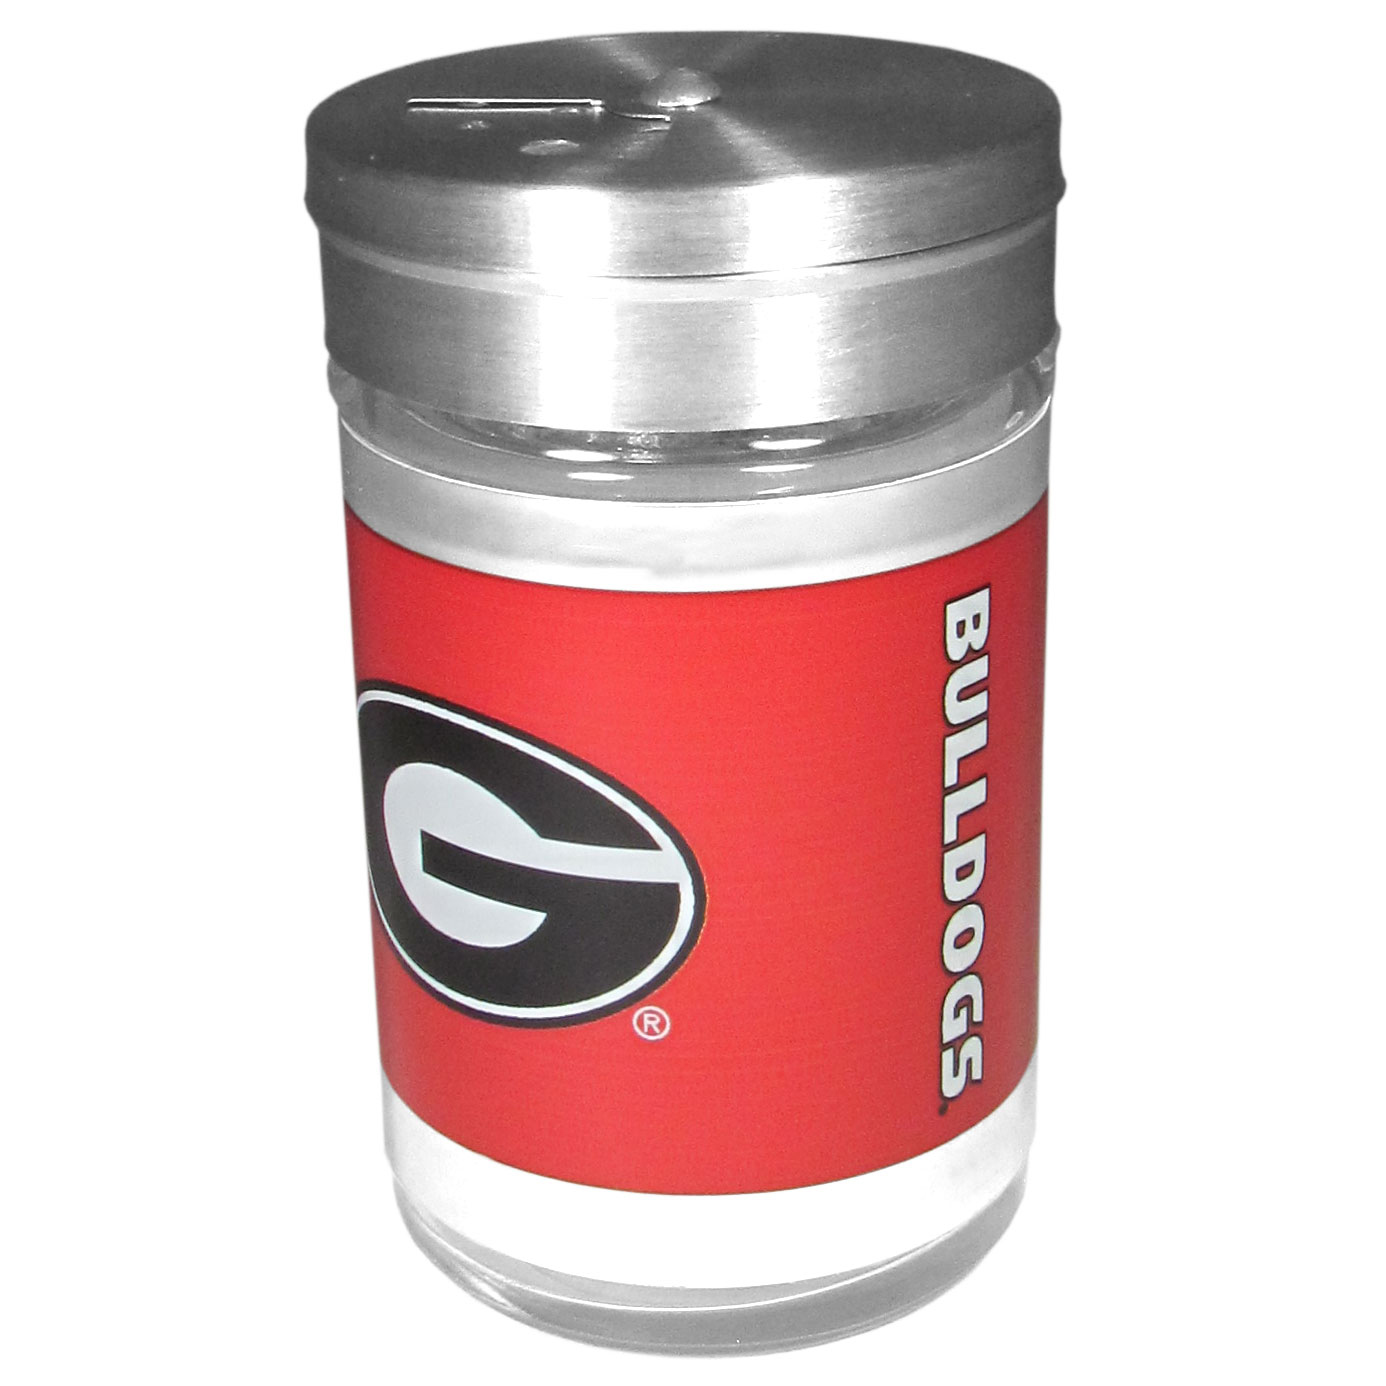 Georgia Bulldogs Tailgater Season Shakers - Spice it up with our Georgia Bulldogs tailgater season shakers! This compact shaker is 2 inch tall with a twist top that closes off the holes at the top making it perfect for travel preventing those messy spills. The shaker has wide holes perfect for keeping your pepper seeds or cheese toppings. The bright team graphics will make you the envy of the other fans while you are grilling up your tailgating goodies.